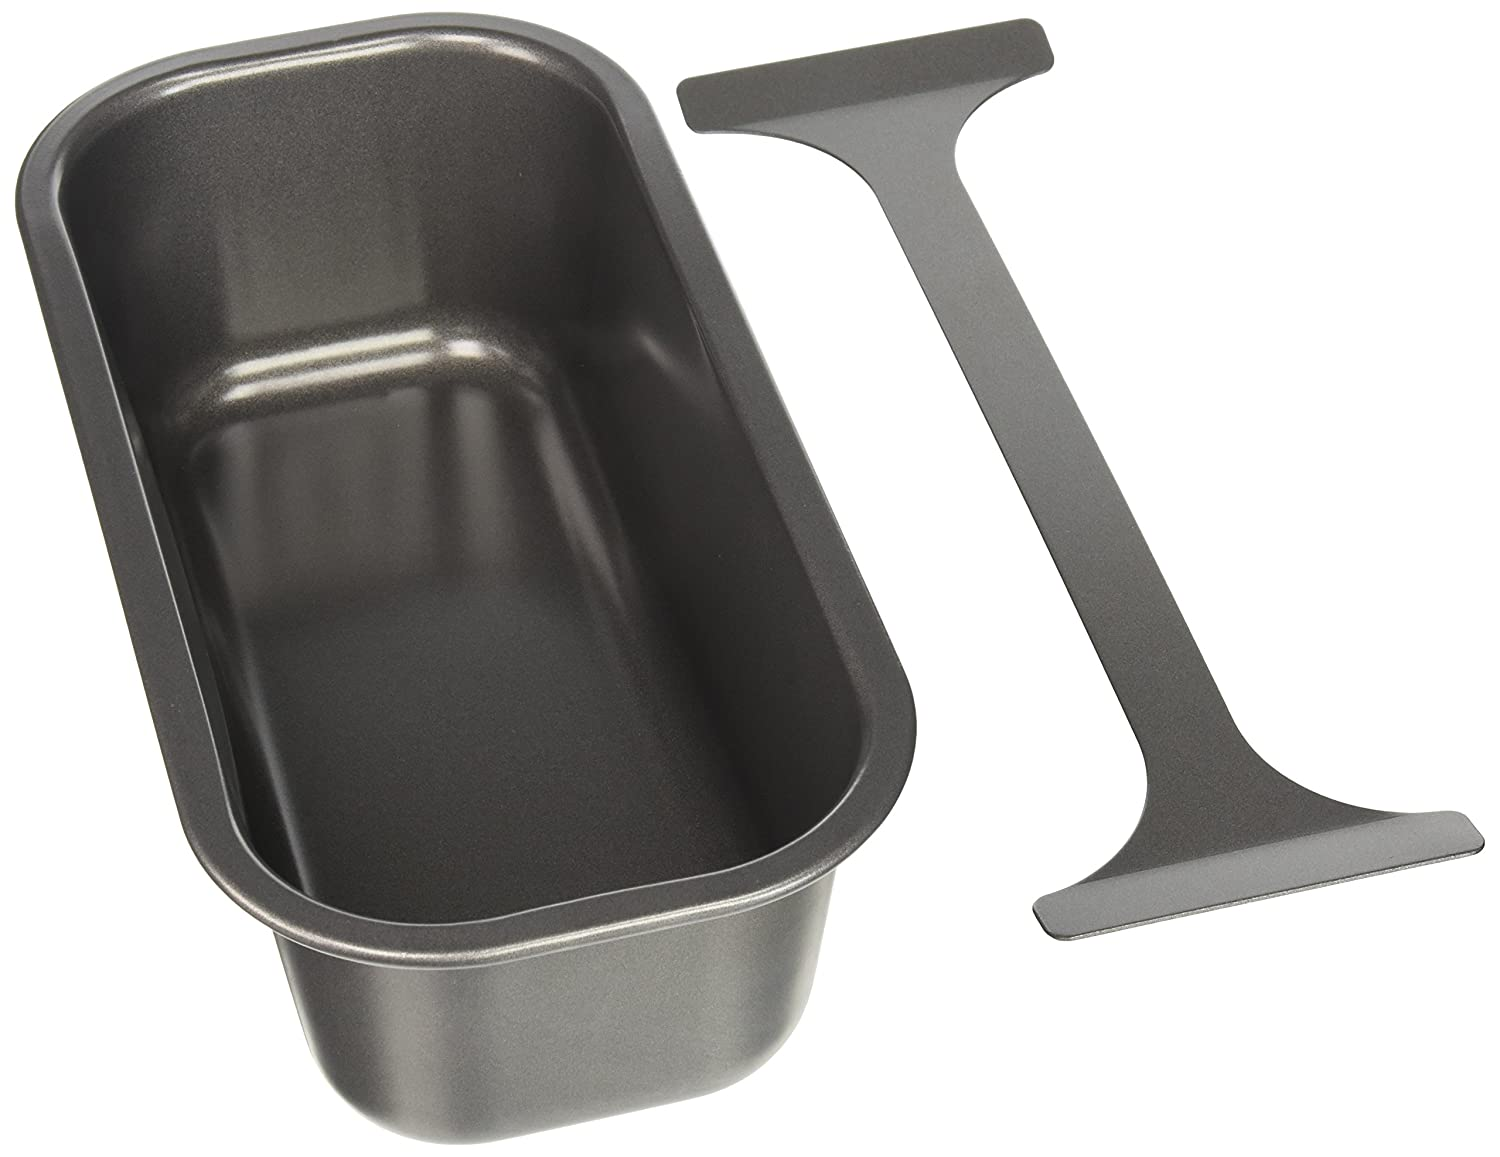 Nesco 4908-12-40PR 3-Piece 2.75 Qt Non stick Pans, Fits Any 18 Qt. Roaster Oven, Charcoal